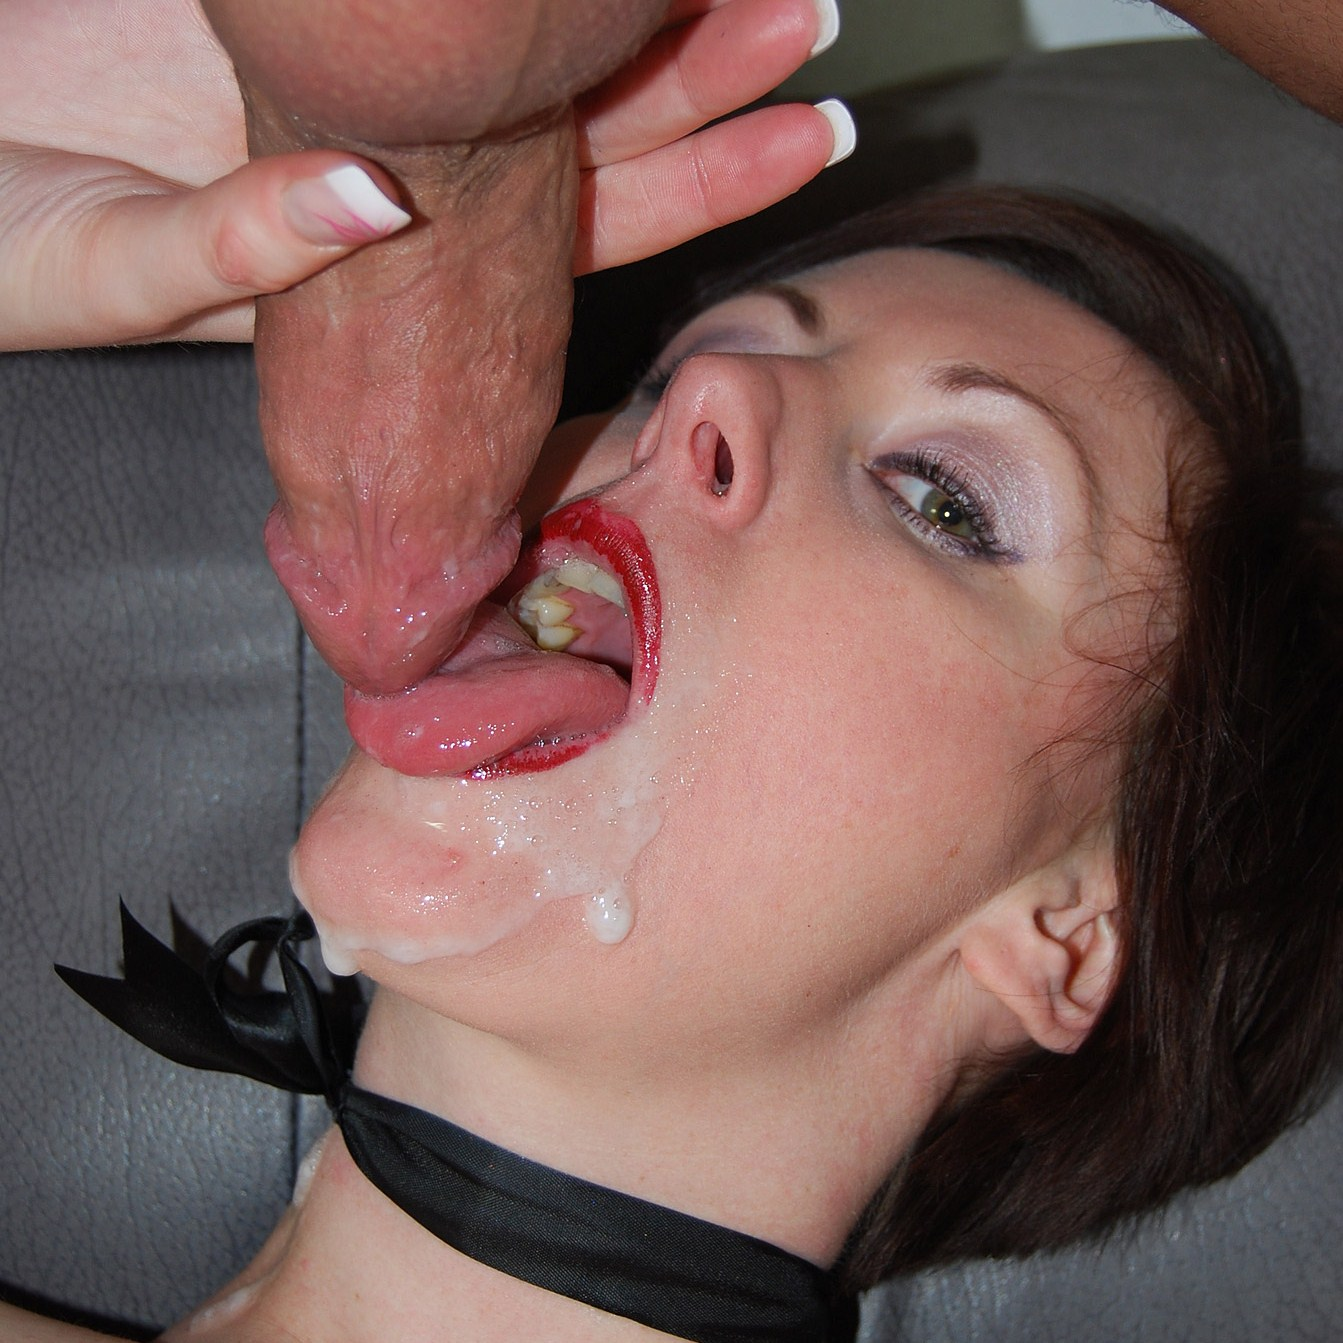 Mouths of cum